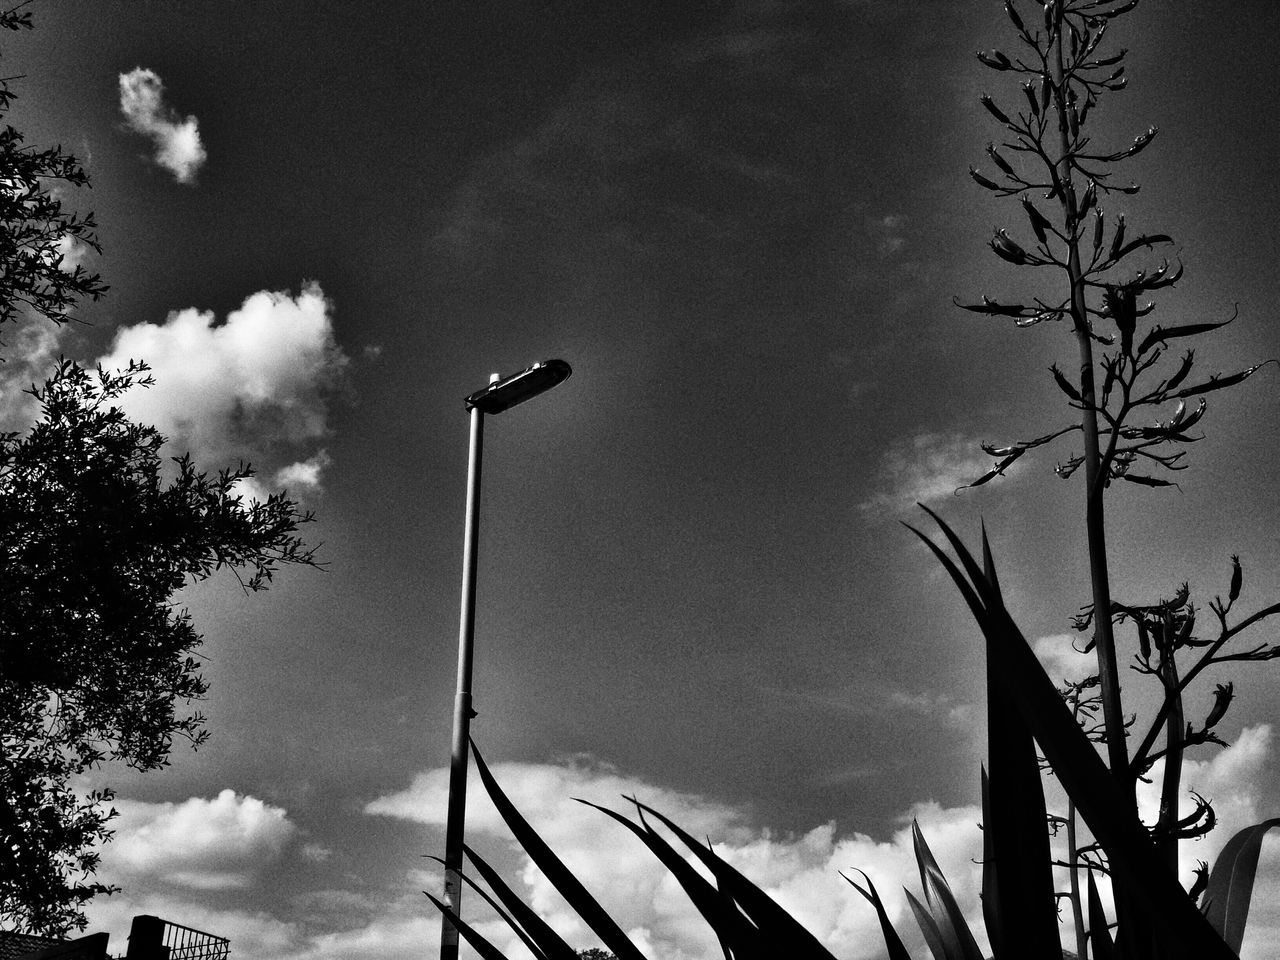 sky, low angle view, cloud - sky, silhouette, tree, no people, outdoors, nature, day, flower, close-up